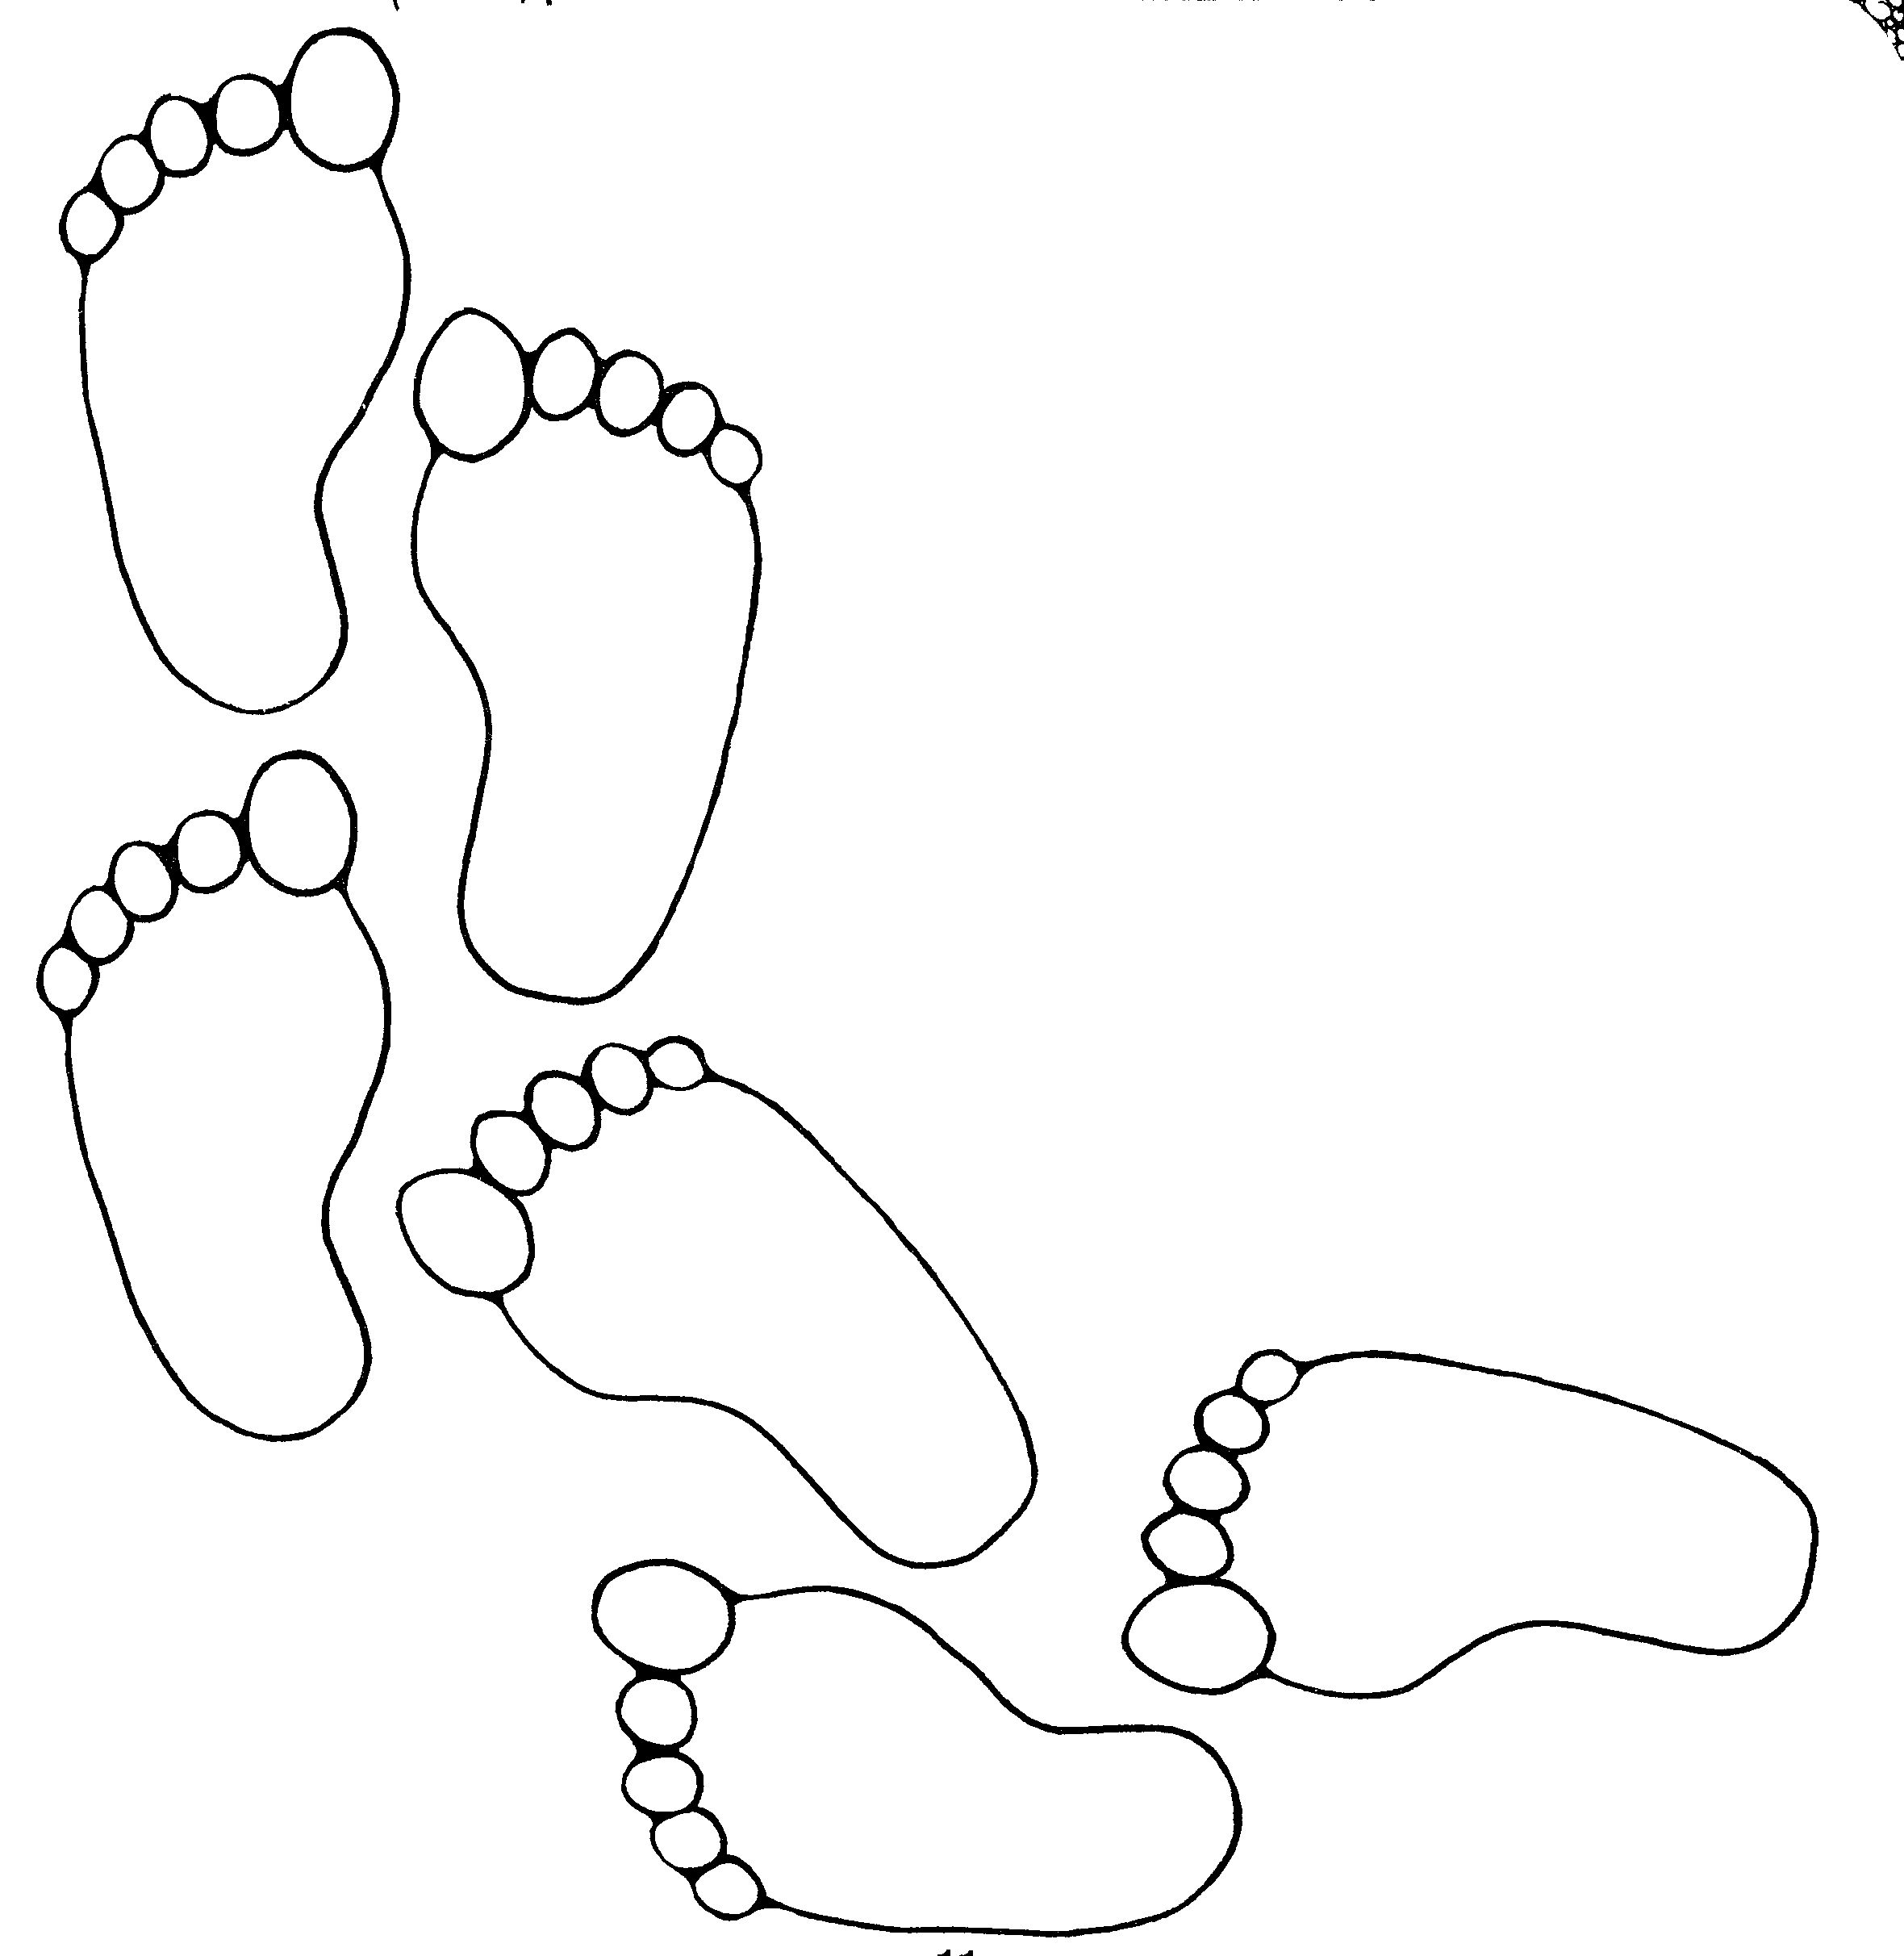 Coloring Pages For Following Jesus. Footprint Coloring Page Clip Art Sketch Mormon Share  Footprints art and Patterns